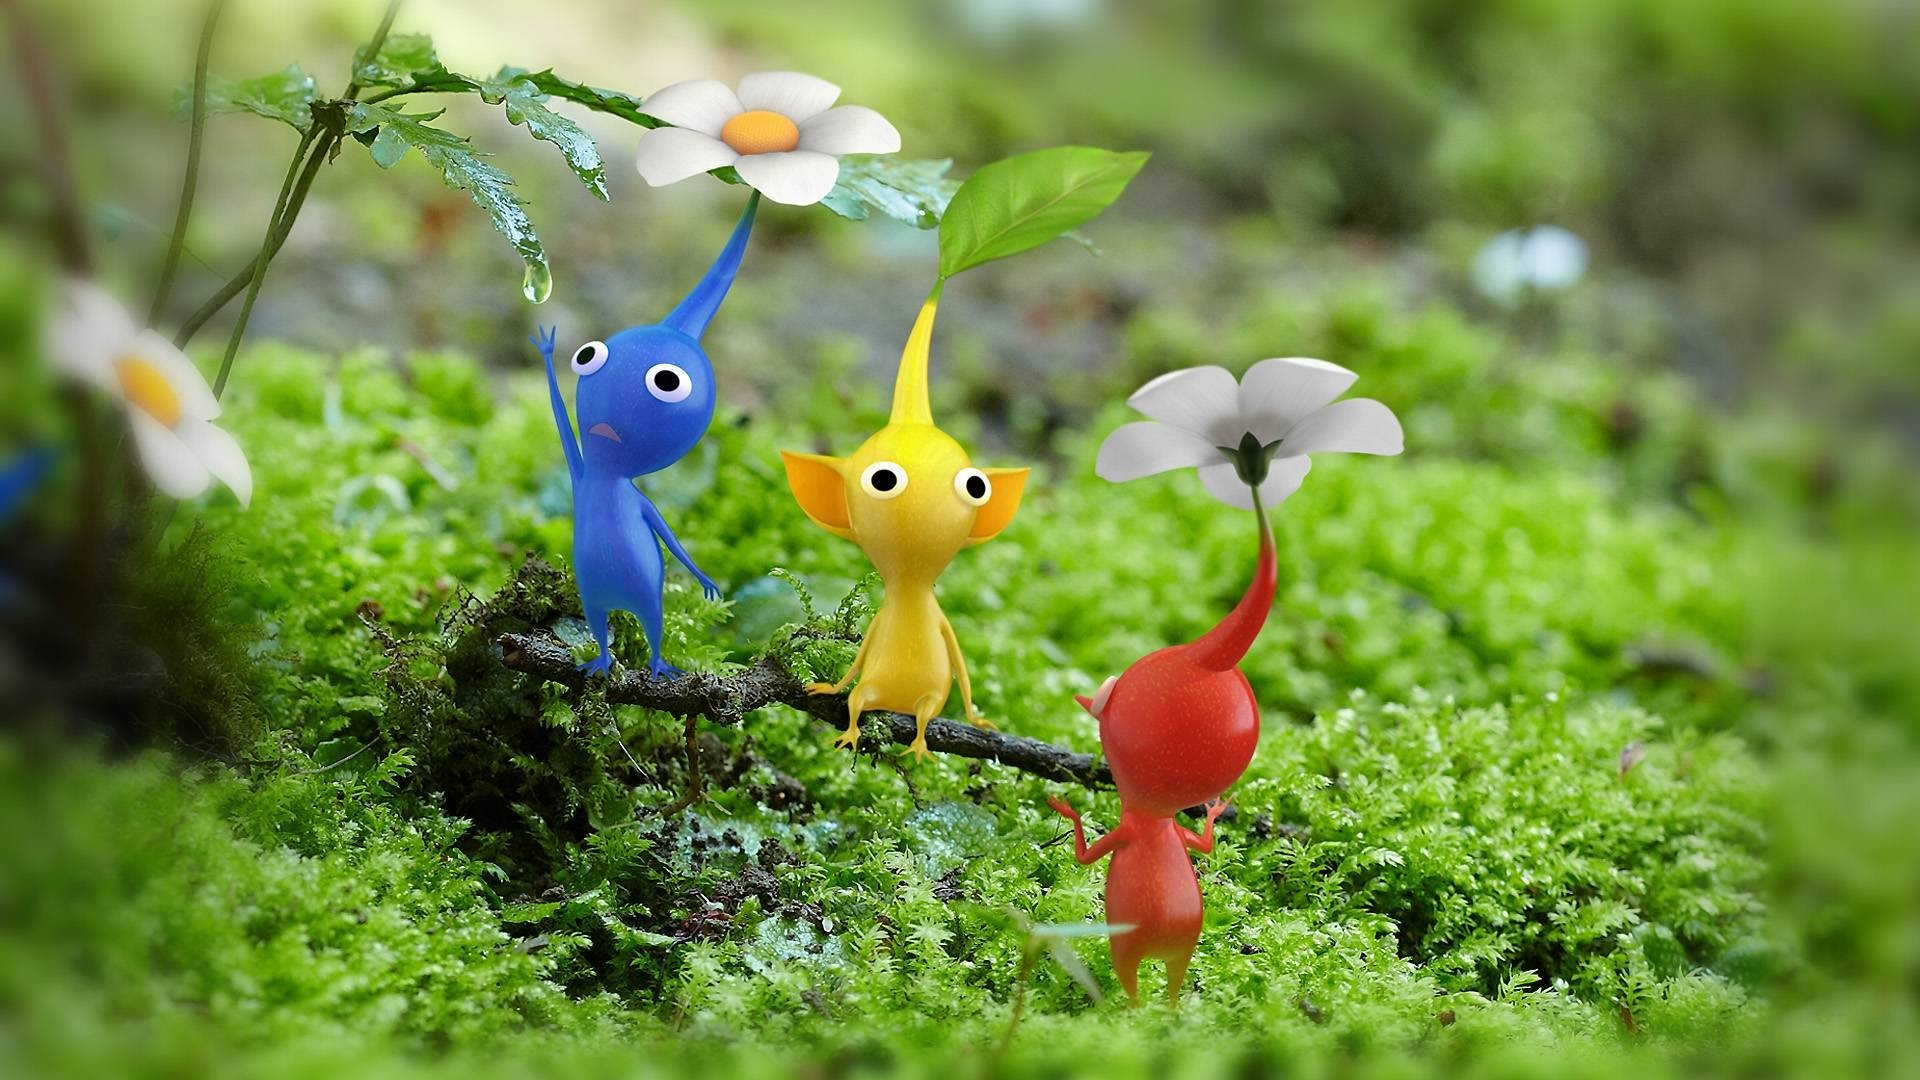 Pikmin 3 Wallpaper Hd Pikmin 3 Full Hd Wallpaper And Background Image